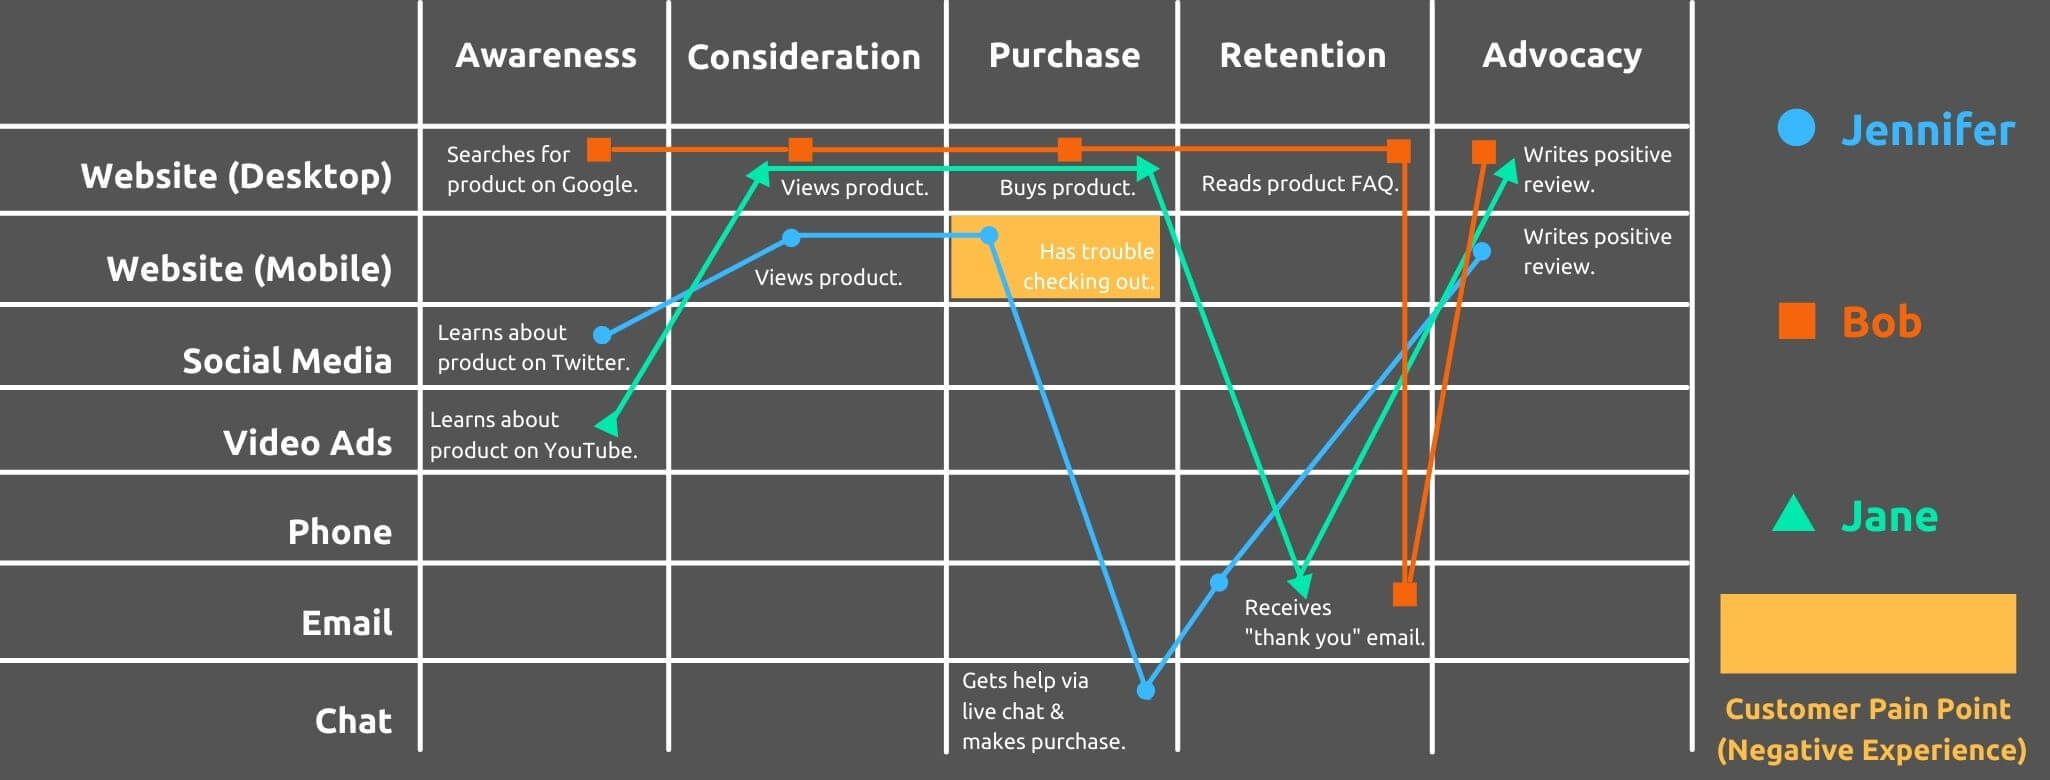 Complete Customer Journey Map - How to Create a Customer Journey Map - Replyco Helpdesk Software for eCommerce